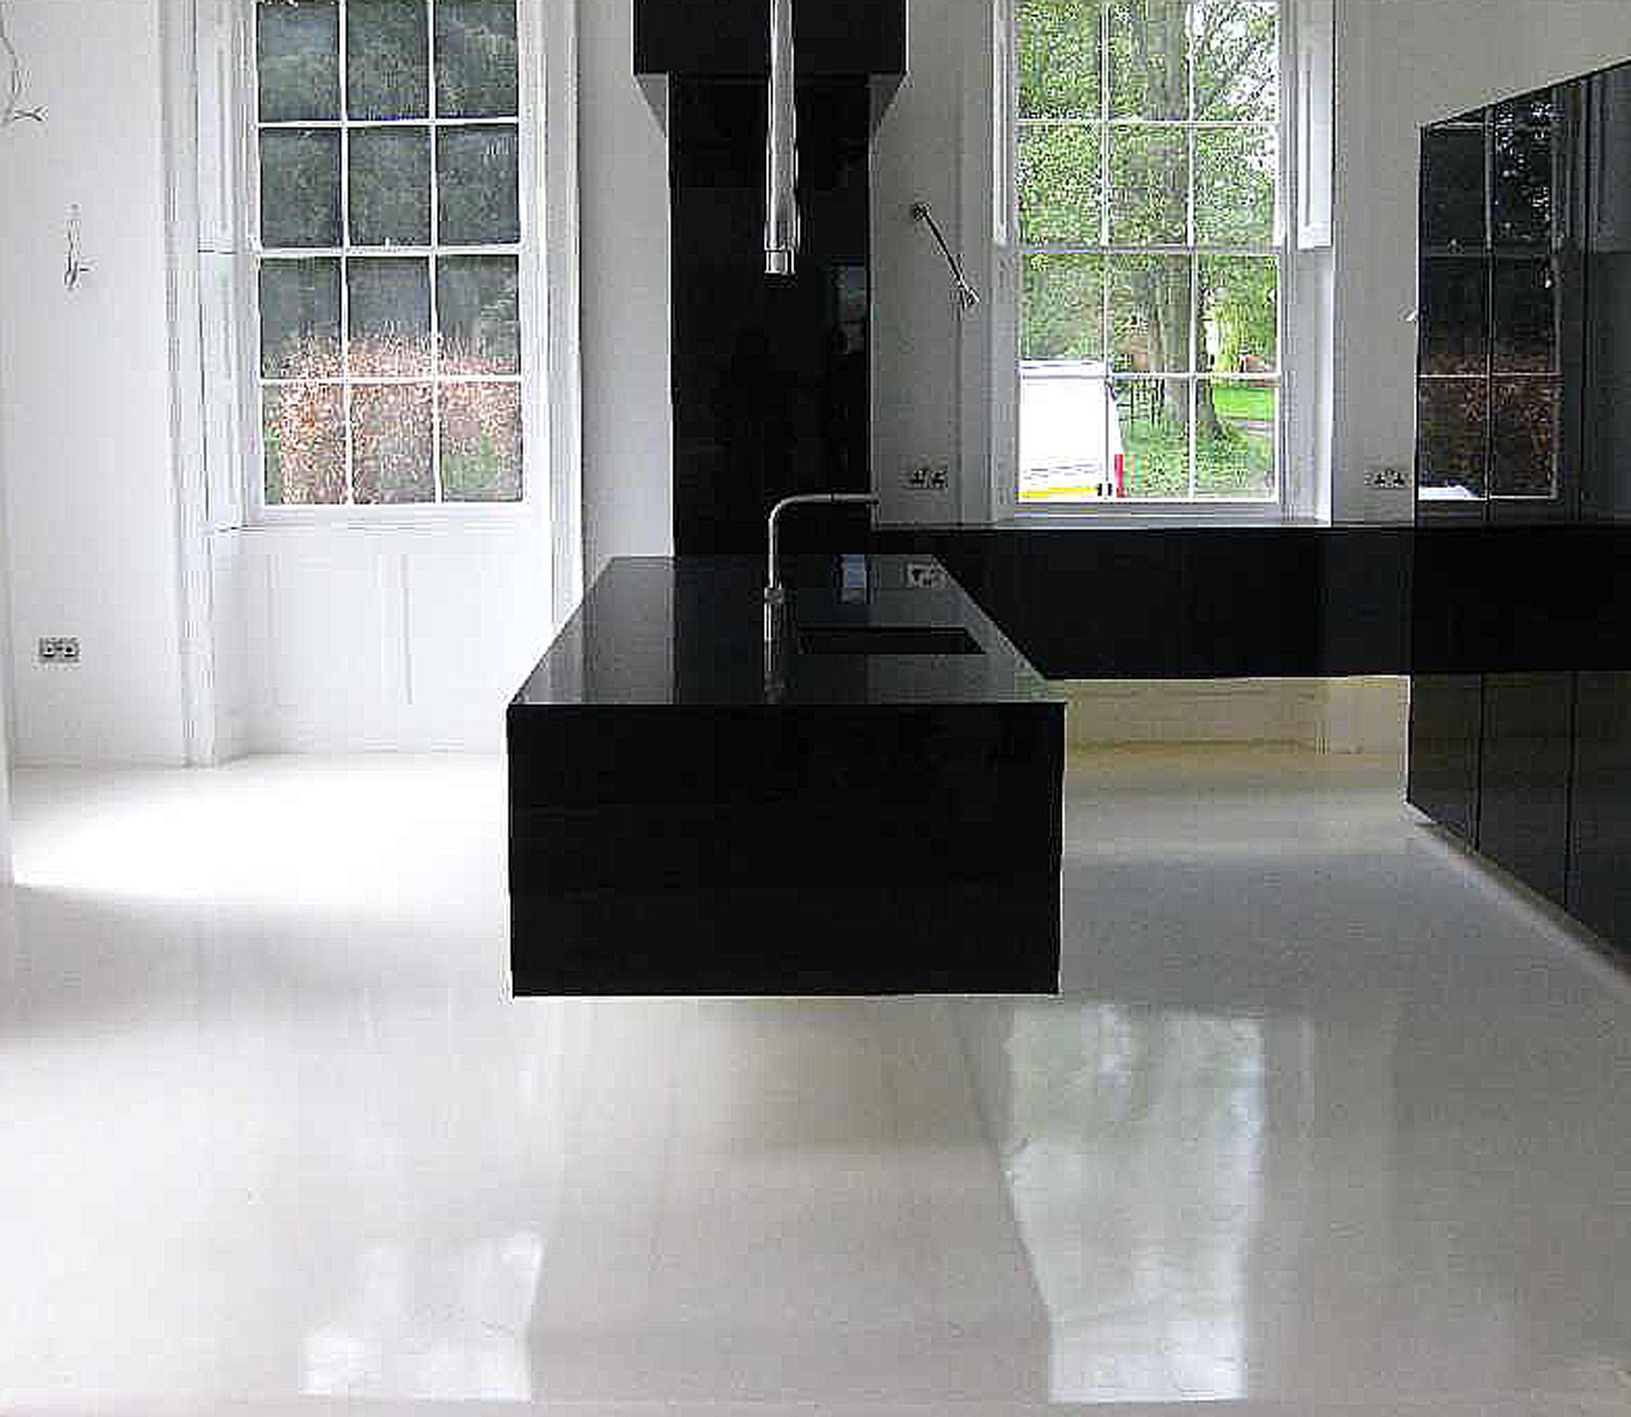 epoxy flooring kitchen Ultra modern gloss black floating cantilevered kitchen with pure white seamless resin floor